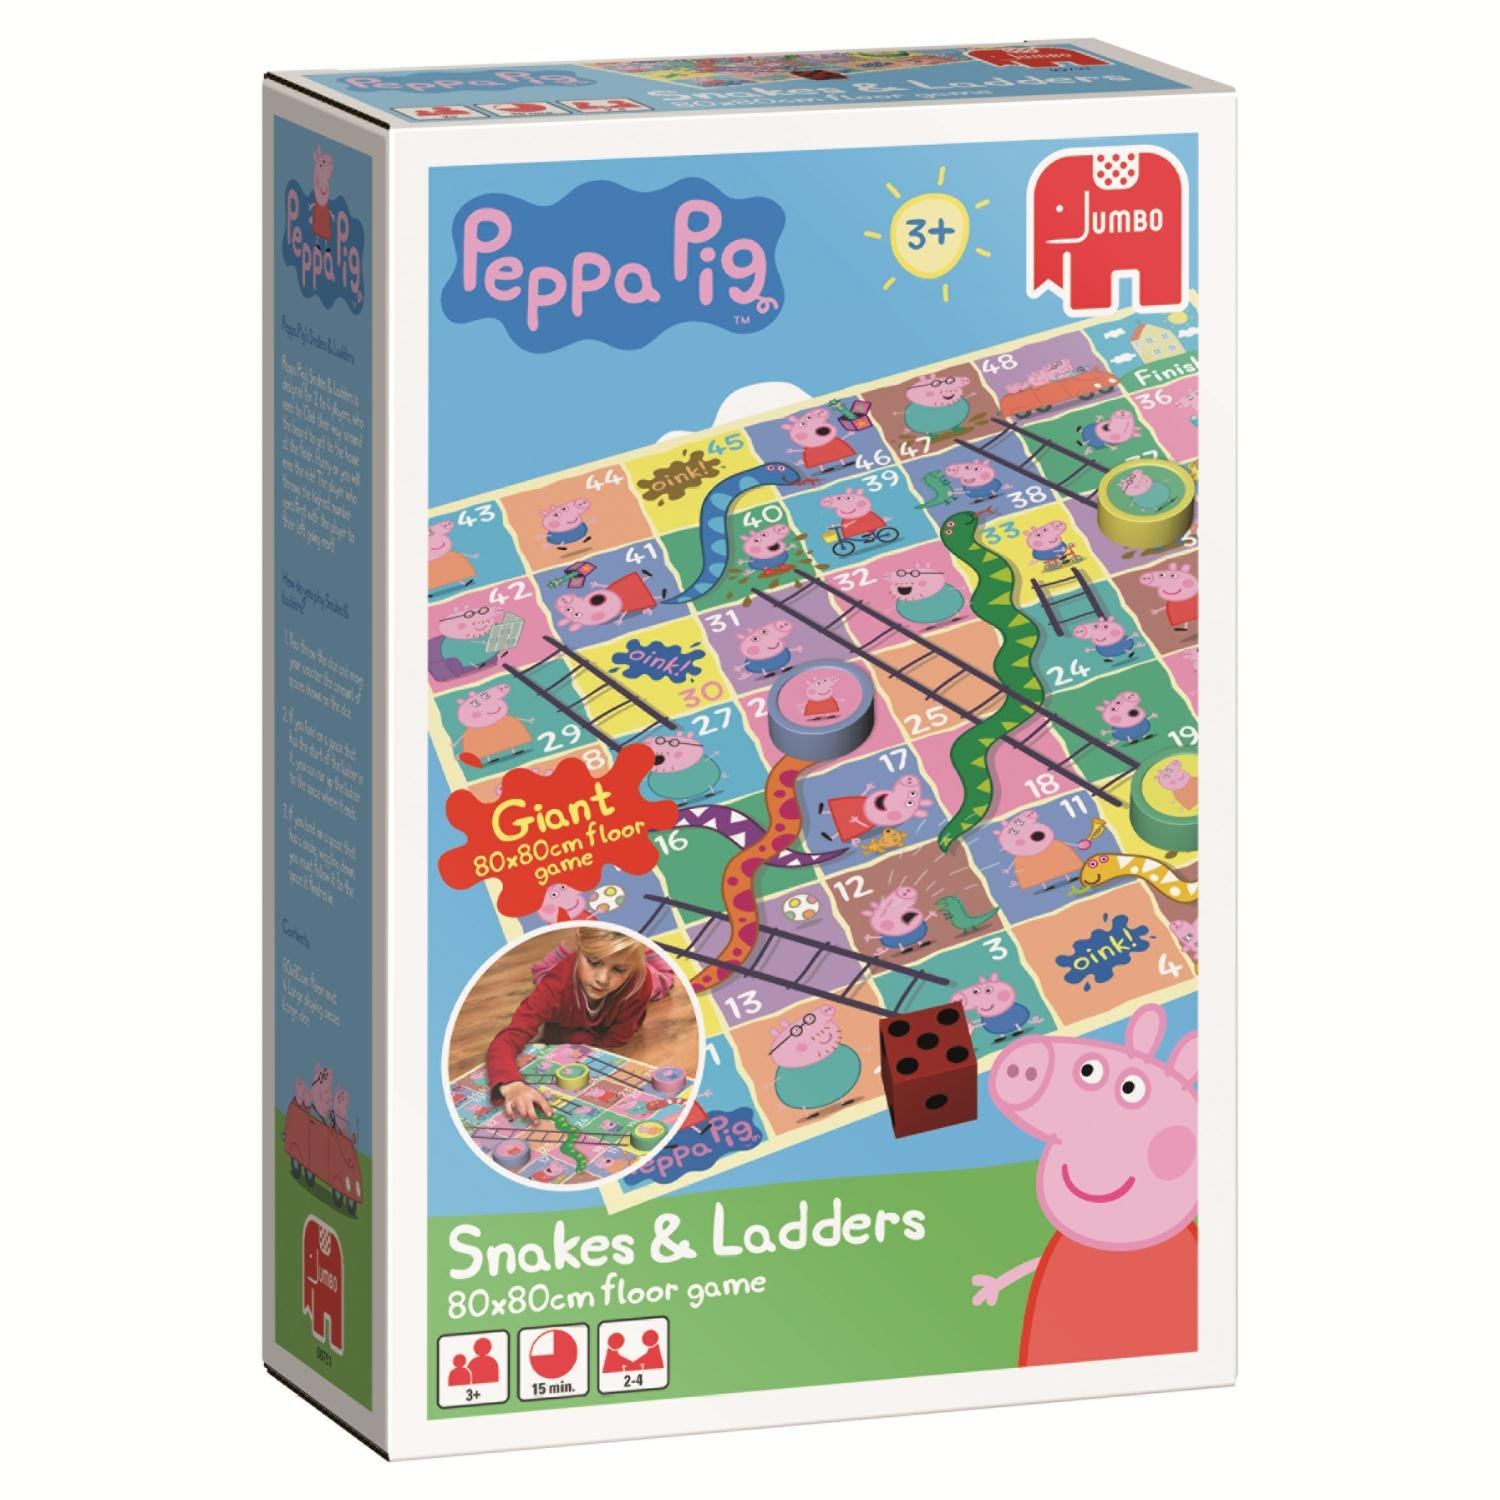 Peppa Pig Snakes and Ladders Bodenspiel (englische Version) Jumbo 00751